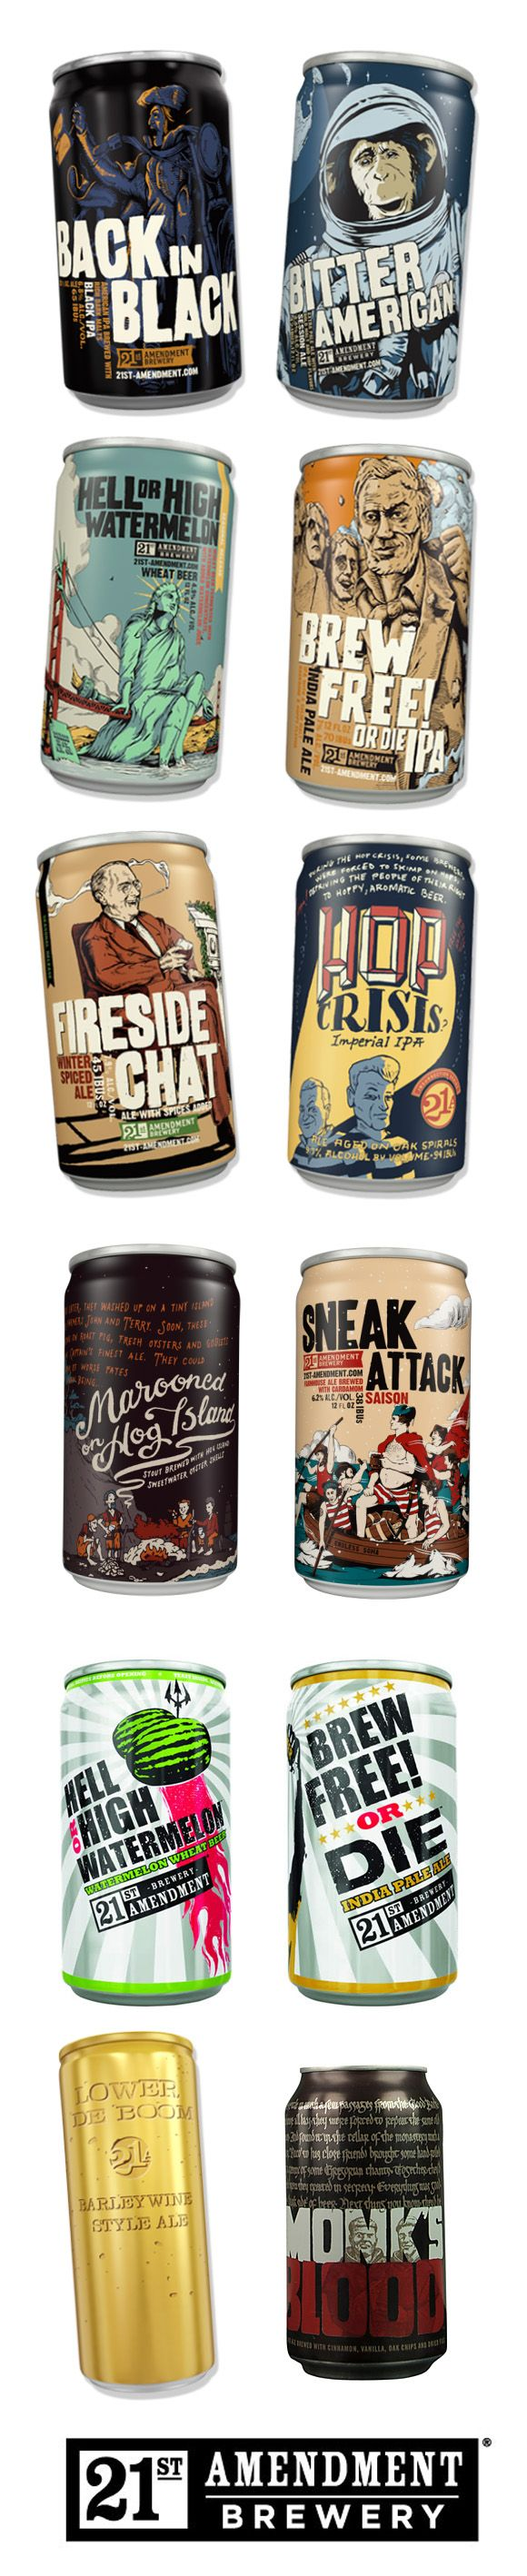 Great collection of San Francisco's 21st Amendment Brewery #beer can #packaging PD